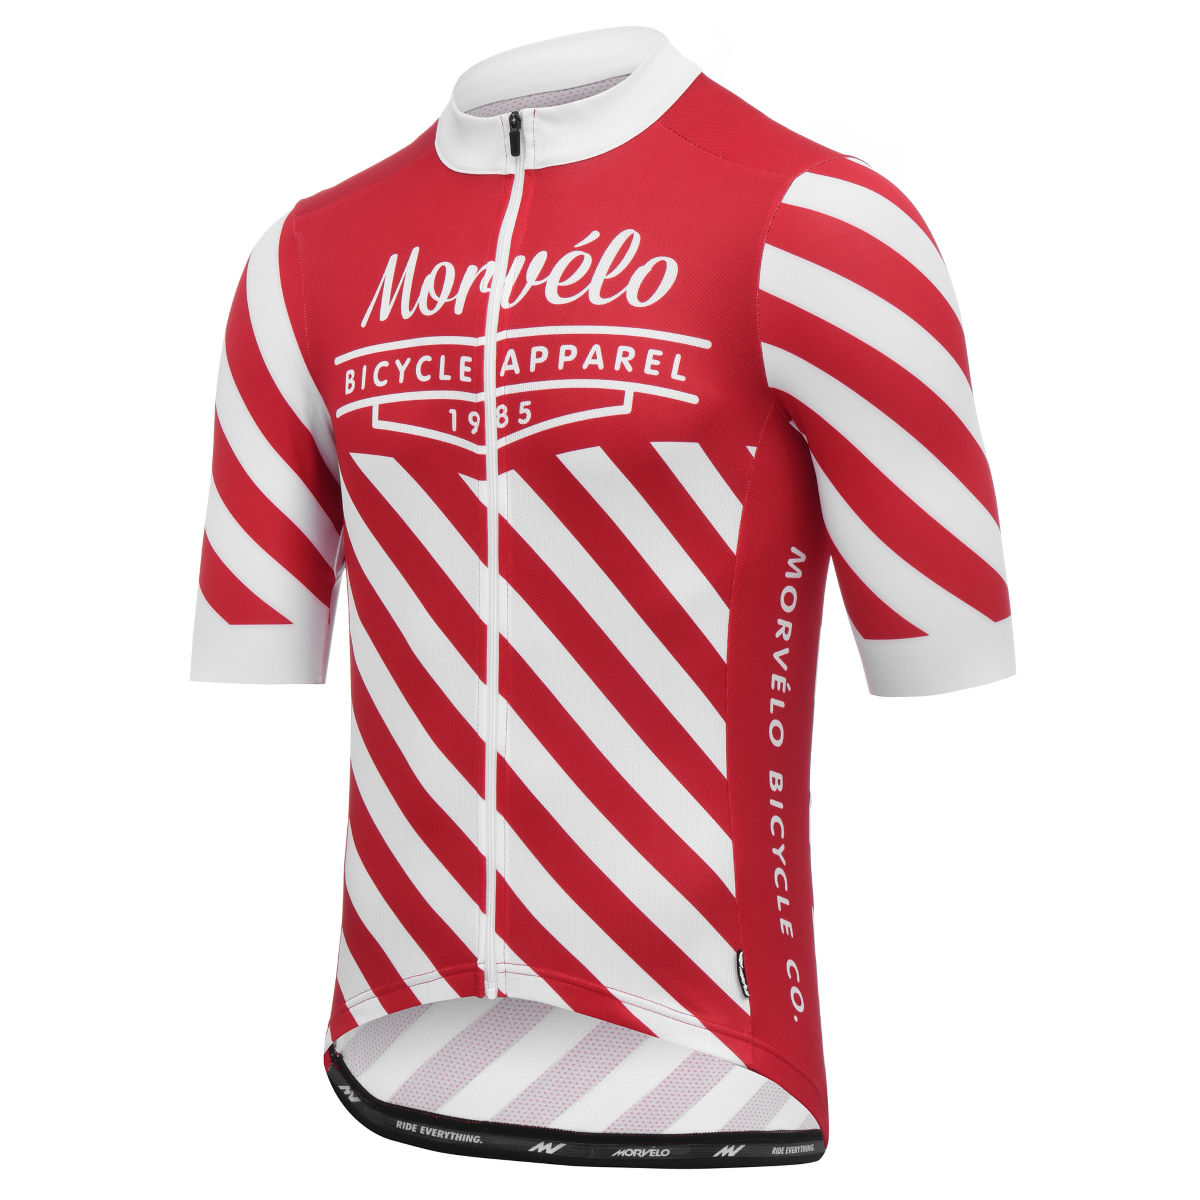 Maillot Morvélo 10 Year Celebration 85 - Maillots